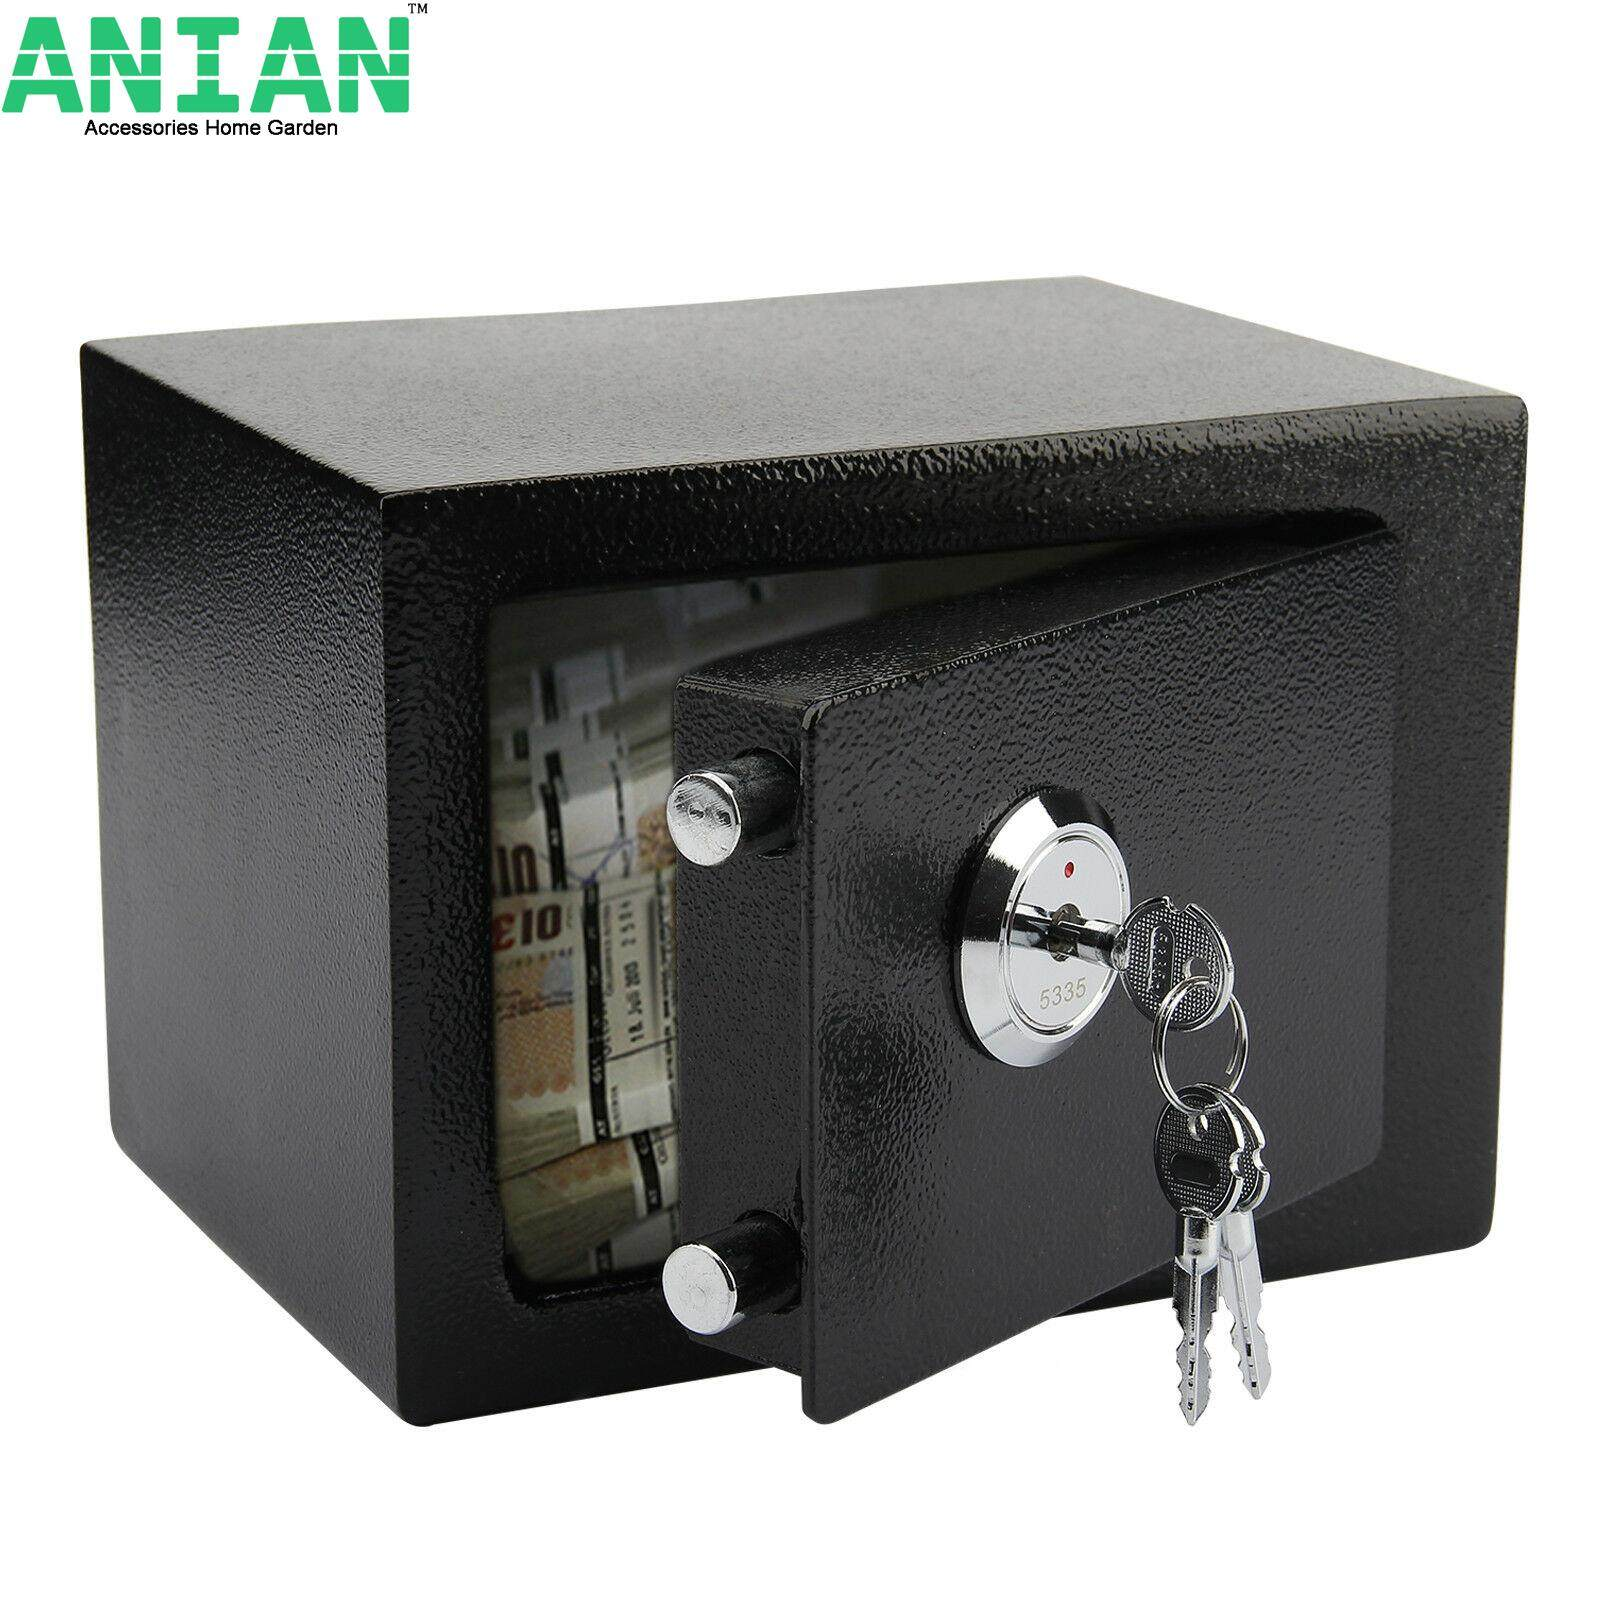 ANIAN DIGITAL STEEL SAFE ELECTRONIC SECURITY HOME OFFICE MONEY CASH SAFETY BOX BLACK